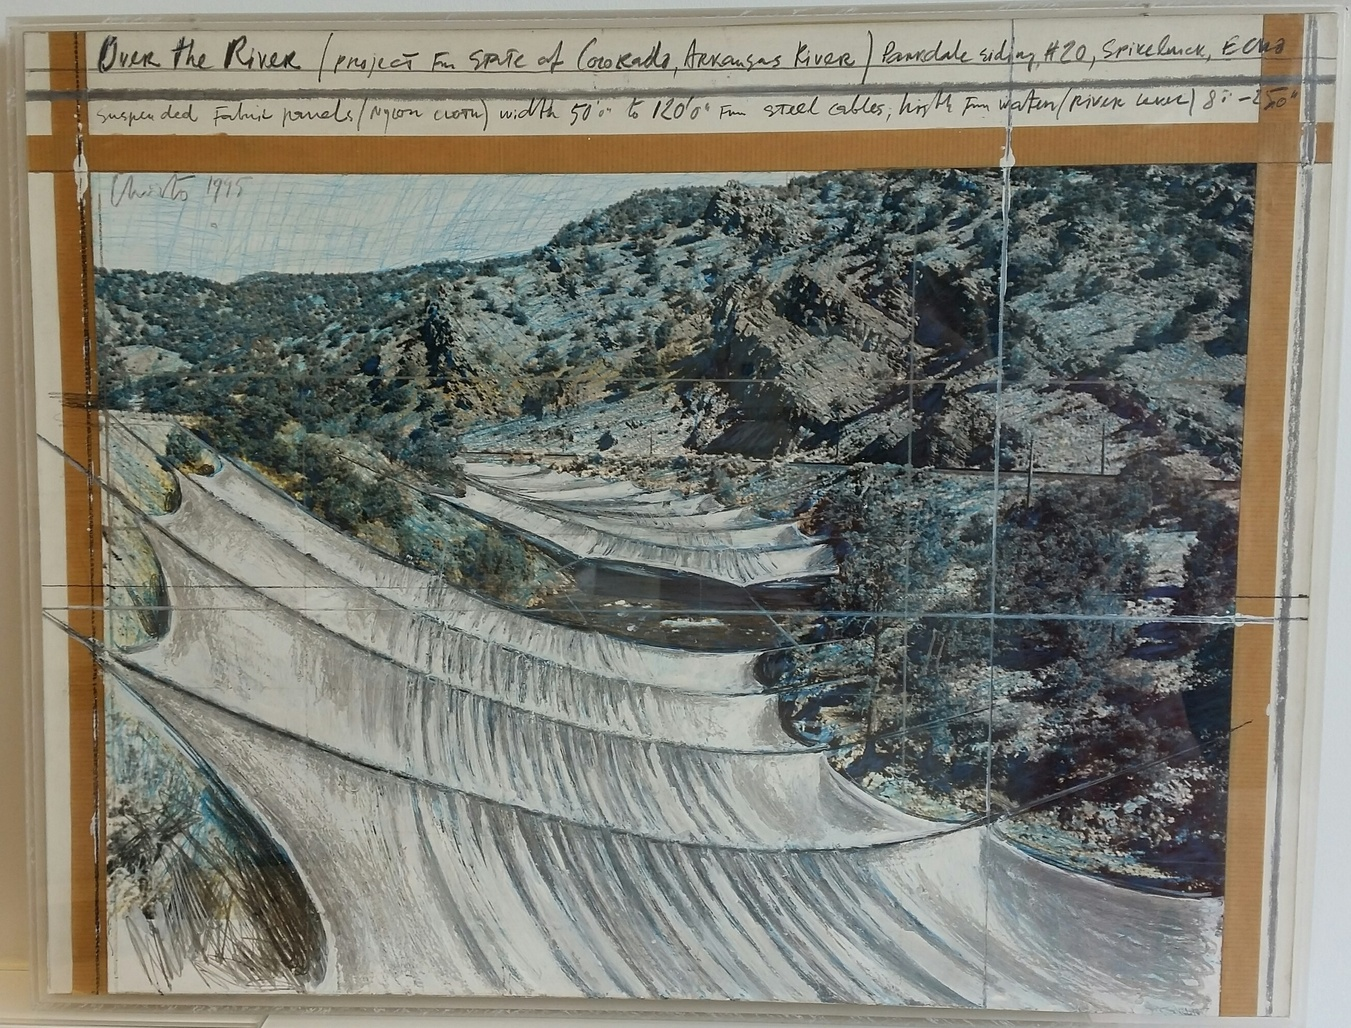 Over the River (Pojrect for State of Colorado, Arkansas River) by Christo